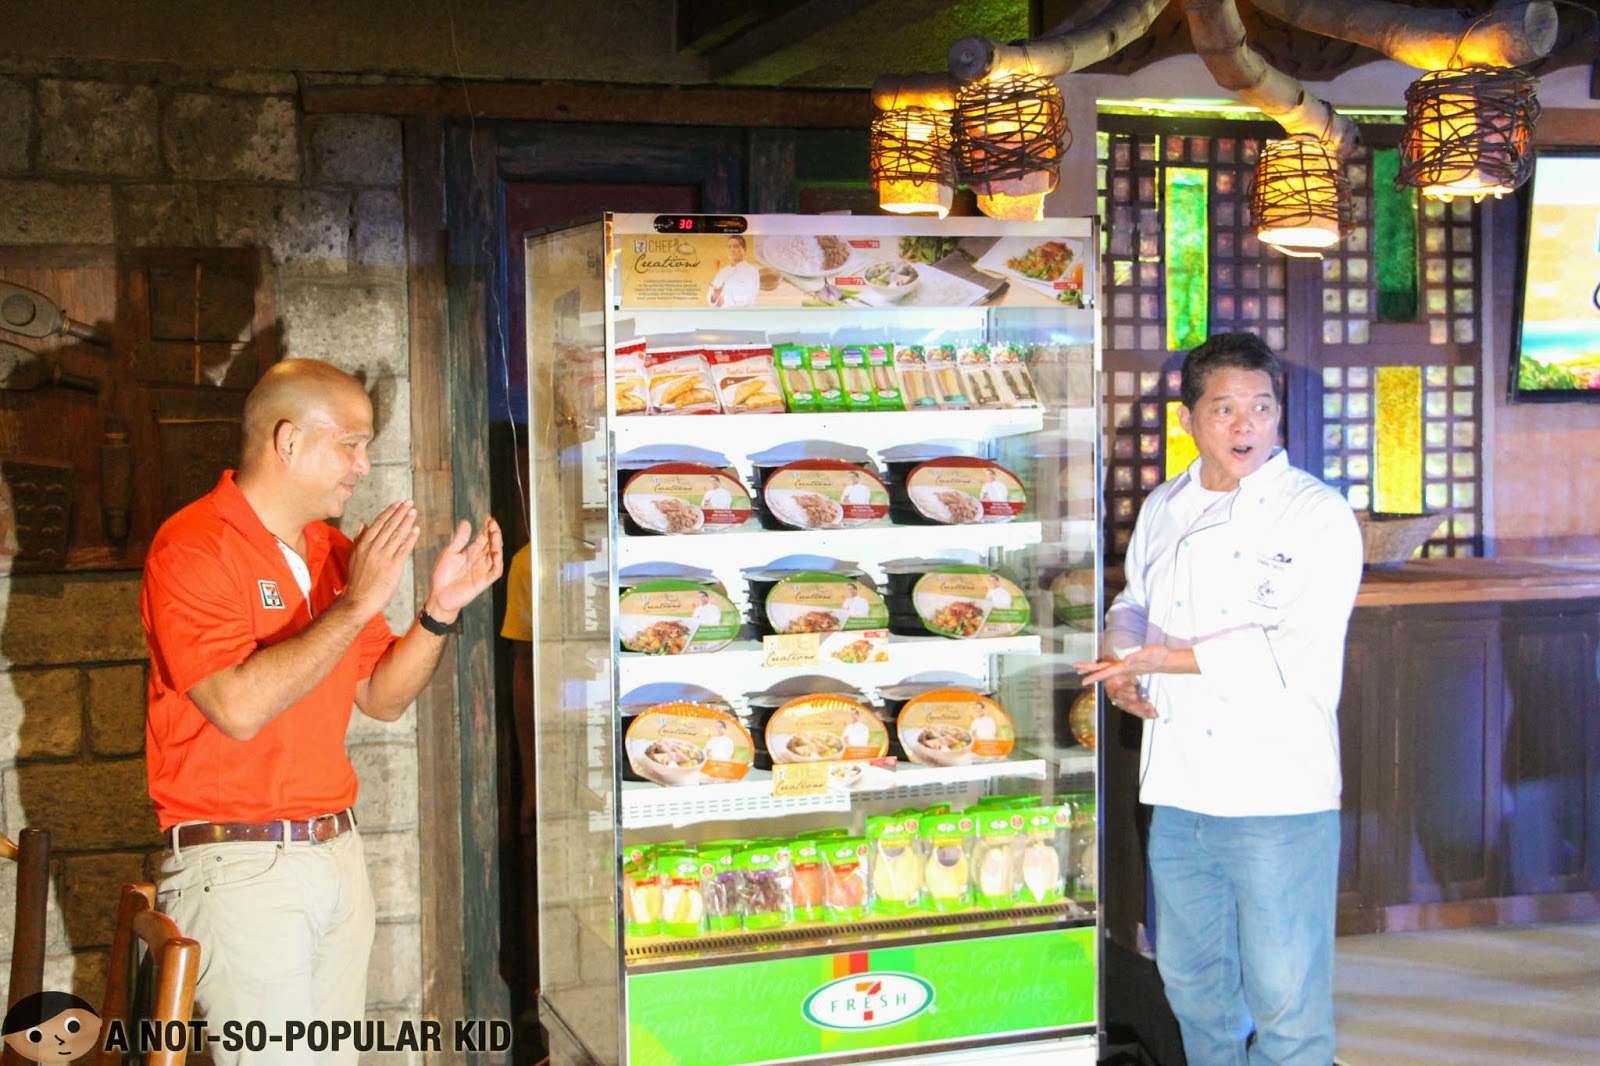 Chef Claude Tayag and Jose Victor Paterno reveal the 7-11's Chef Creations